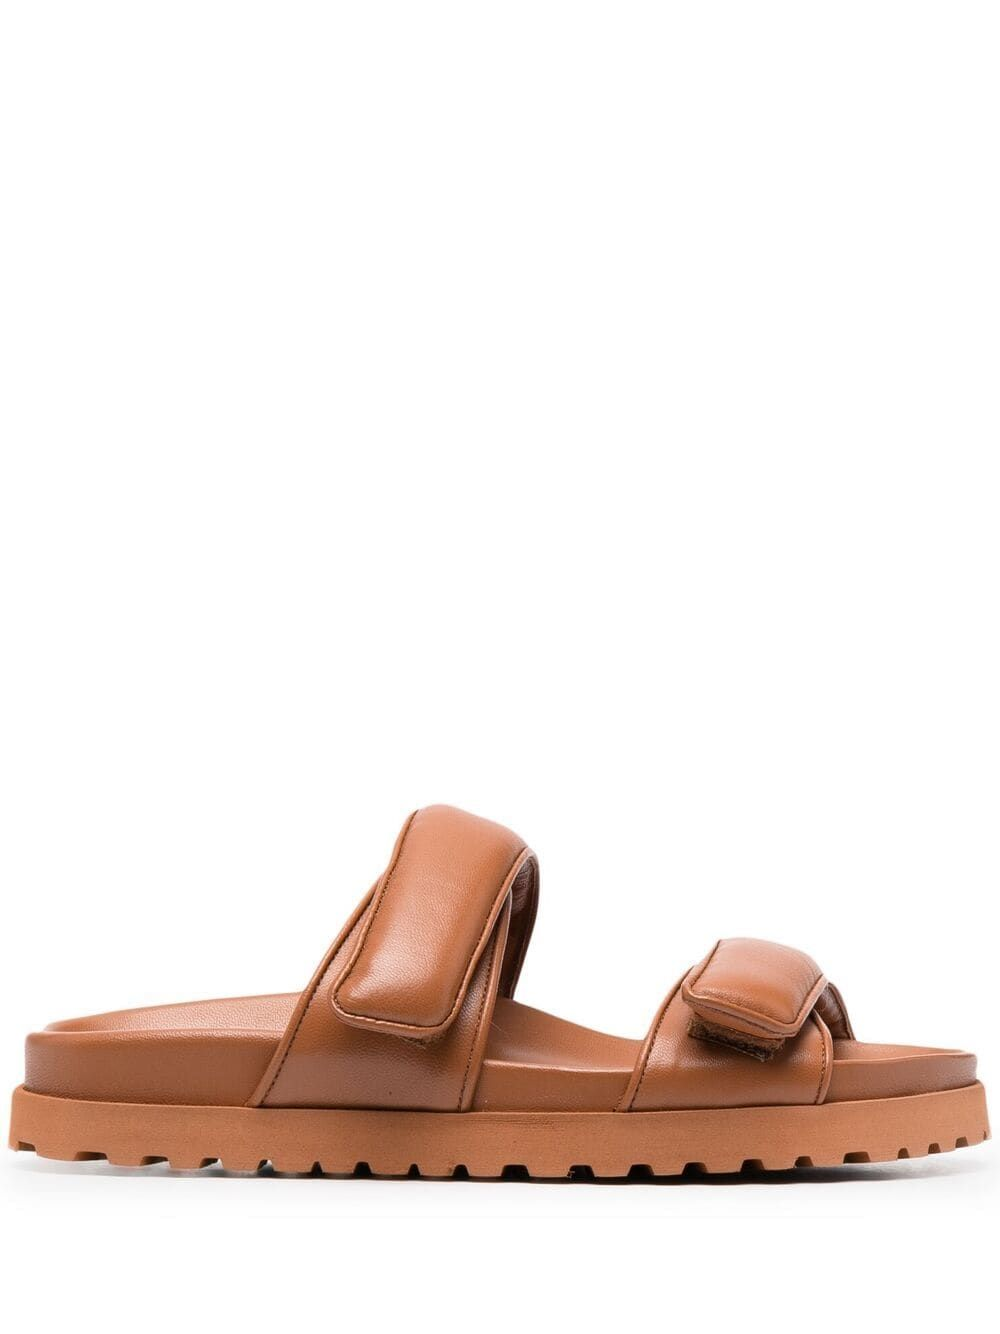 Gia Couture GIA COUTURE WOMEN'S PERNI1104A2 BROWN LEATHER SANDALS